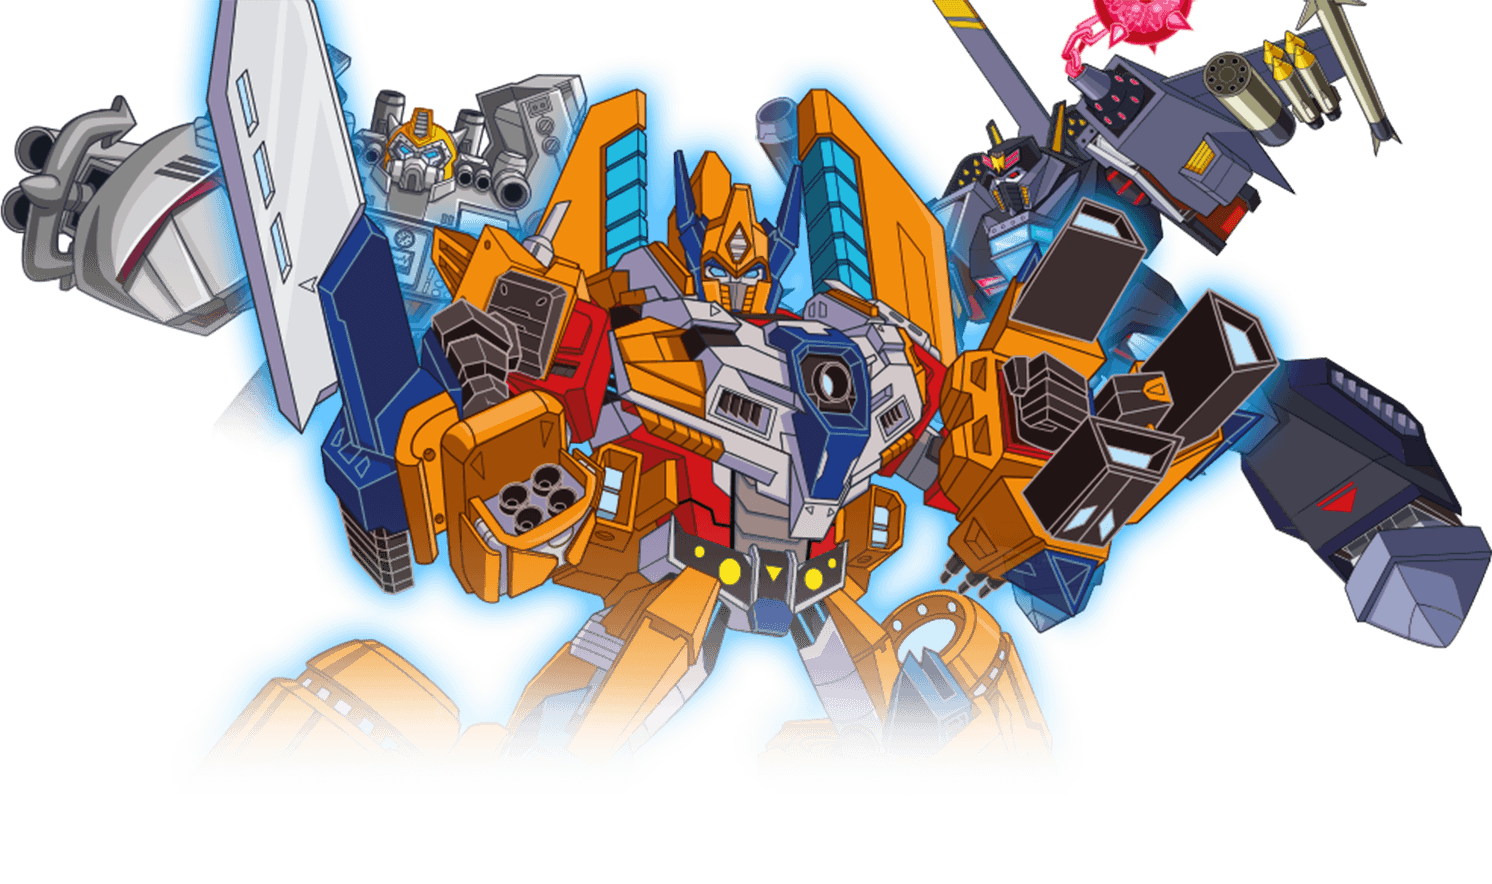 Transformers Cyberverse: Power of the Spark